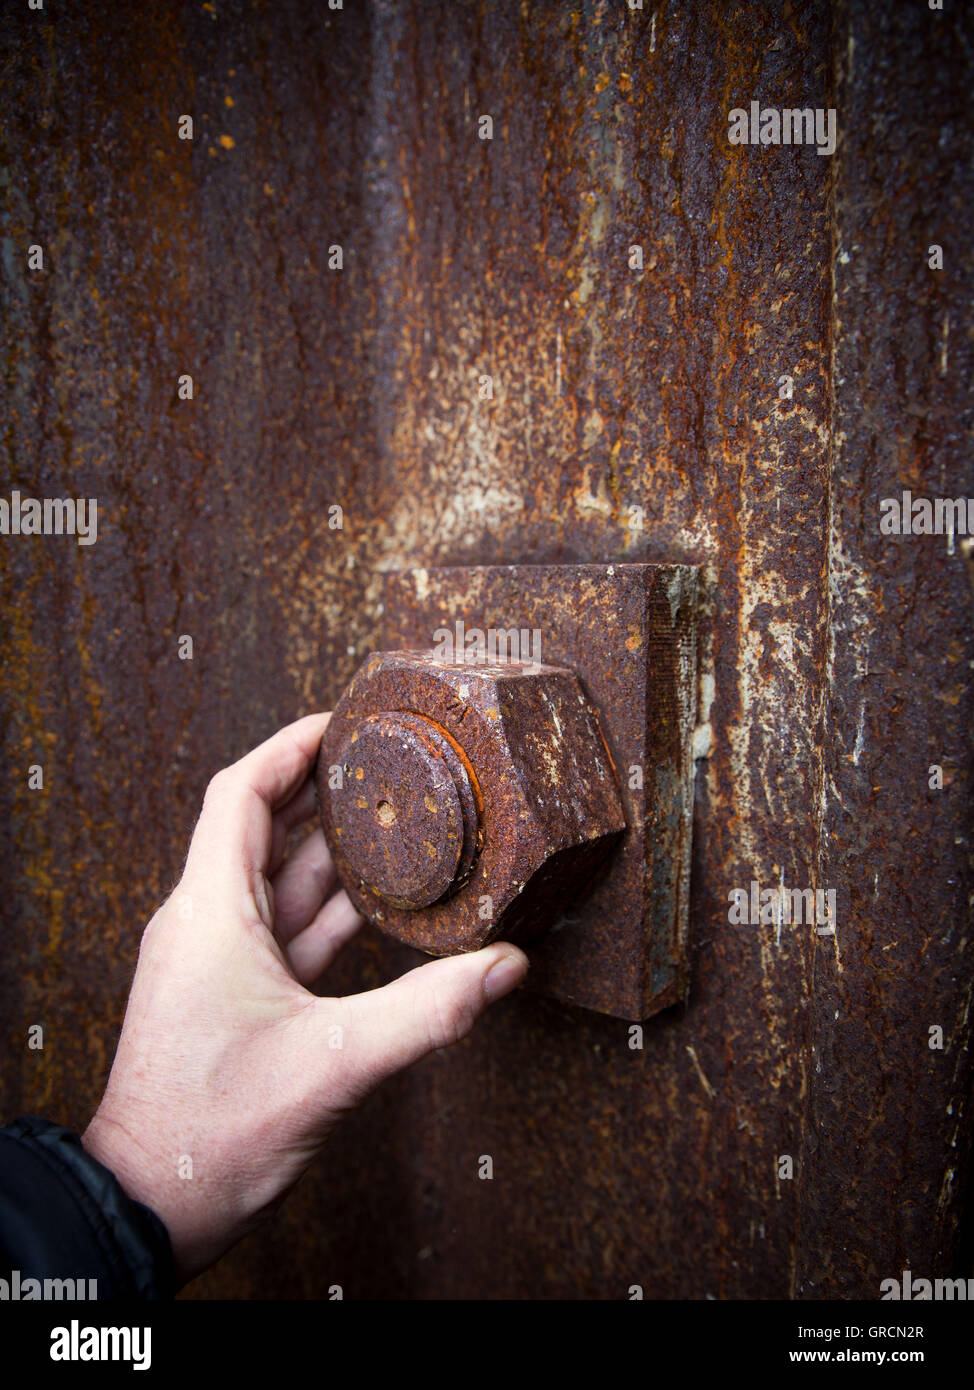 Solve Big Rusty Screw By Hand - Stock Image